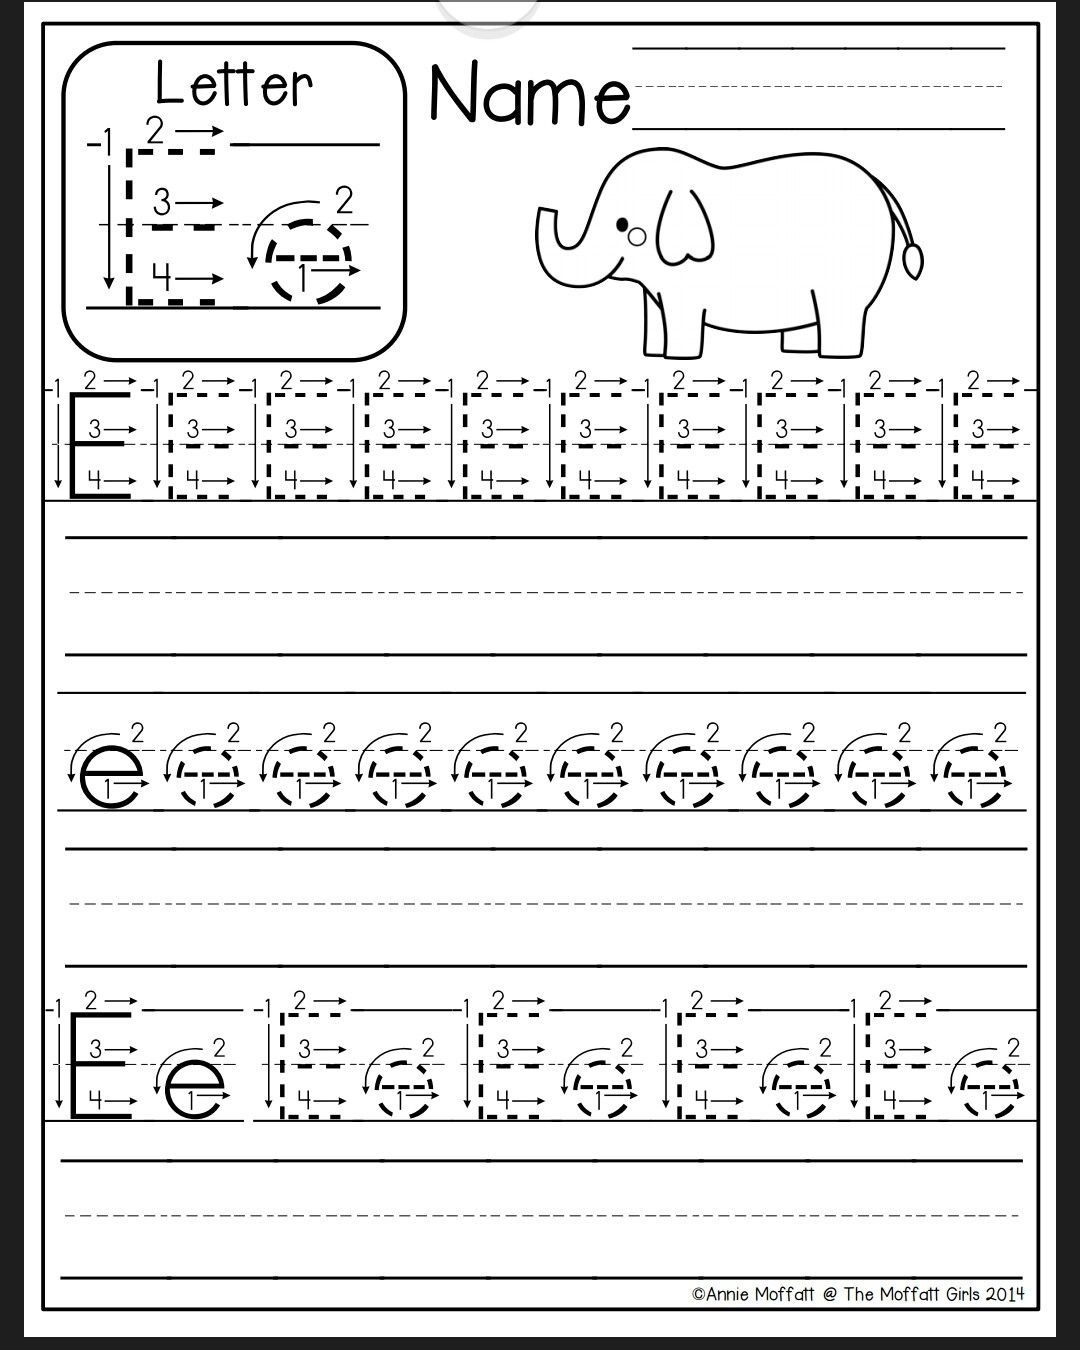 Letter E Worksheet | Preschool Writing, Preschool Worksheets throughout Alphabet Tracing Worksheets E